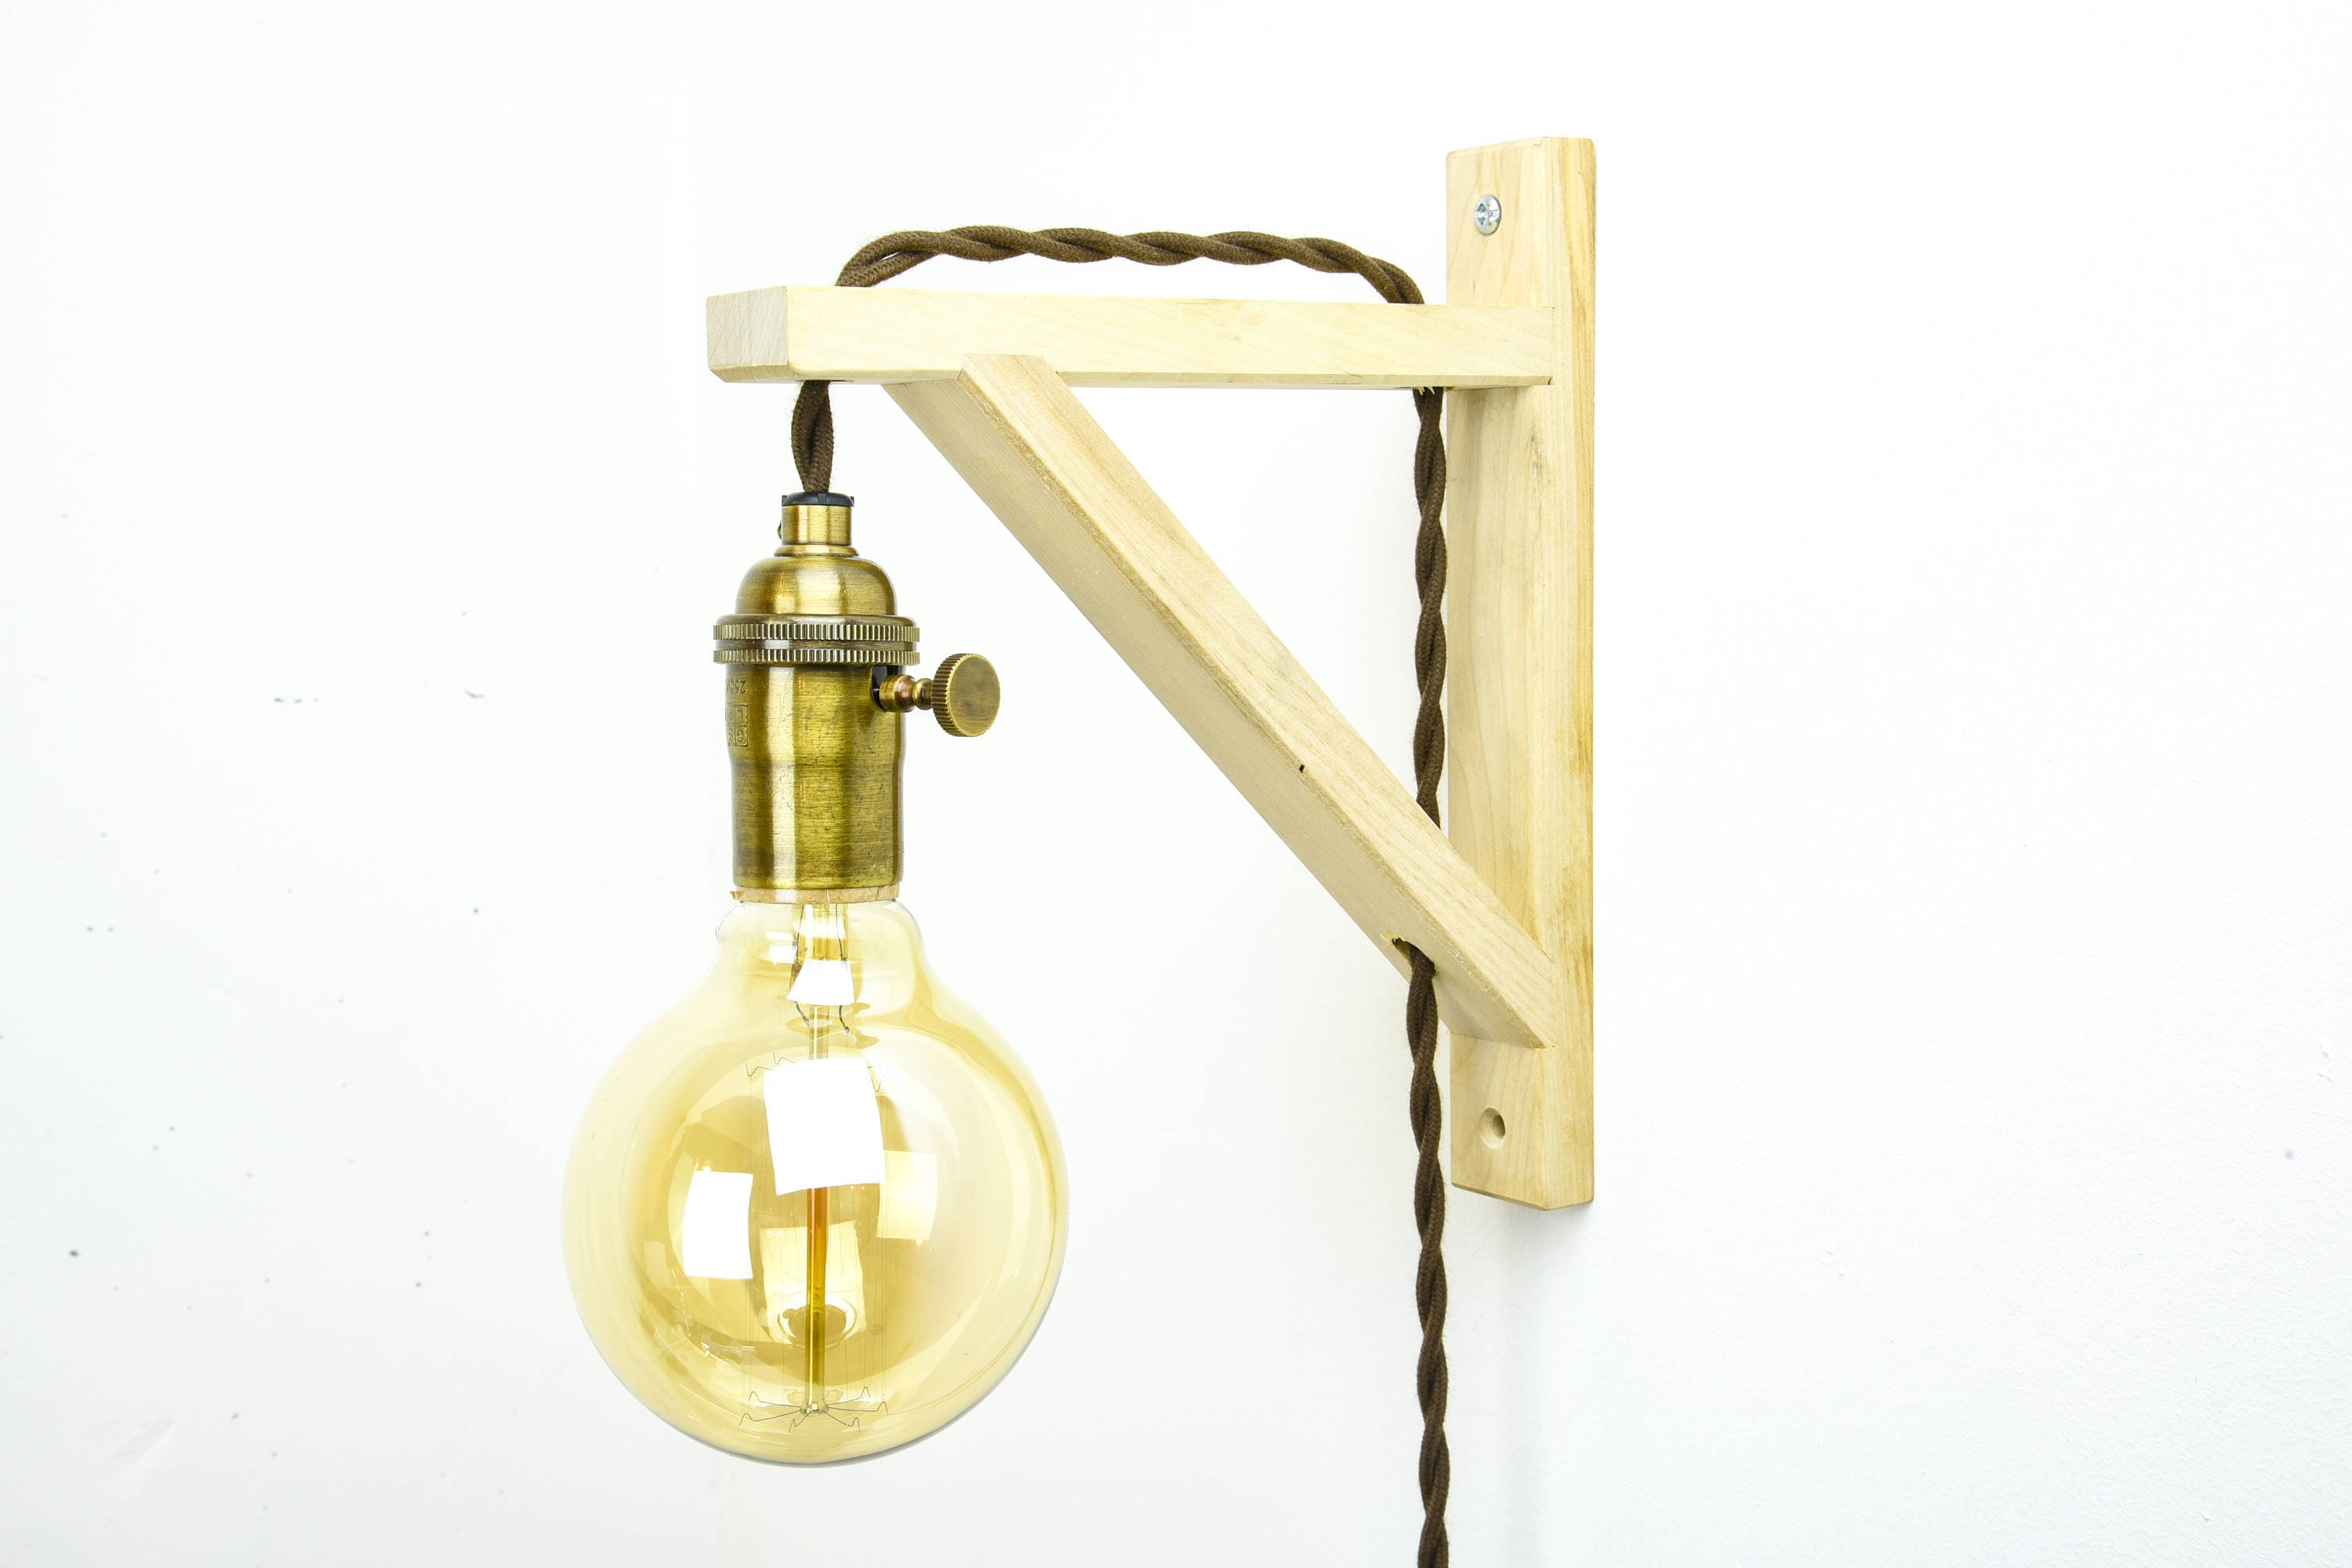 Wood Wall Sconce - Plug In Wall Light - Wall Light Fixture - Antique ...